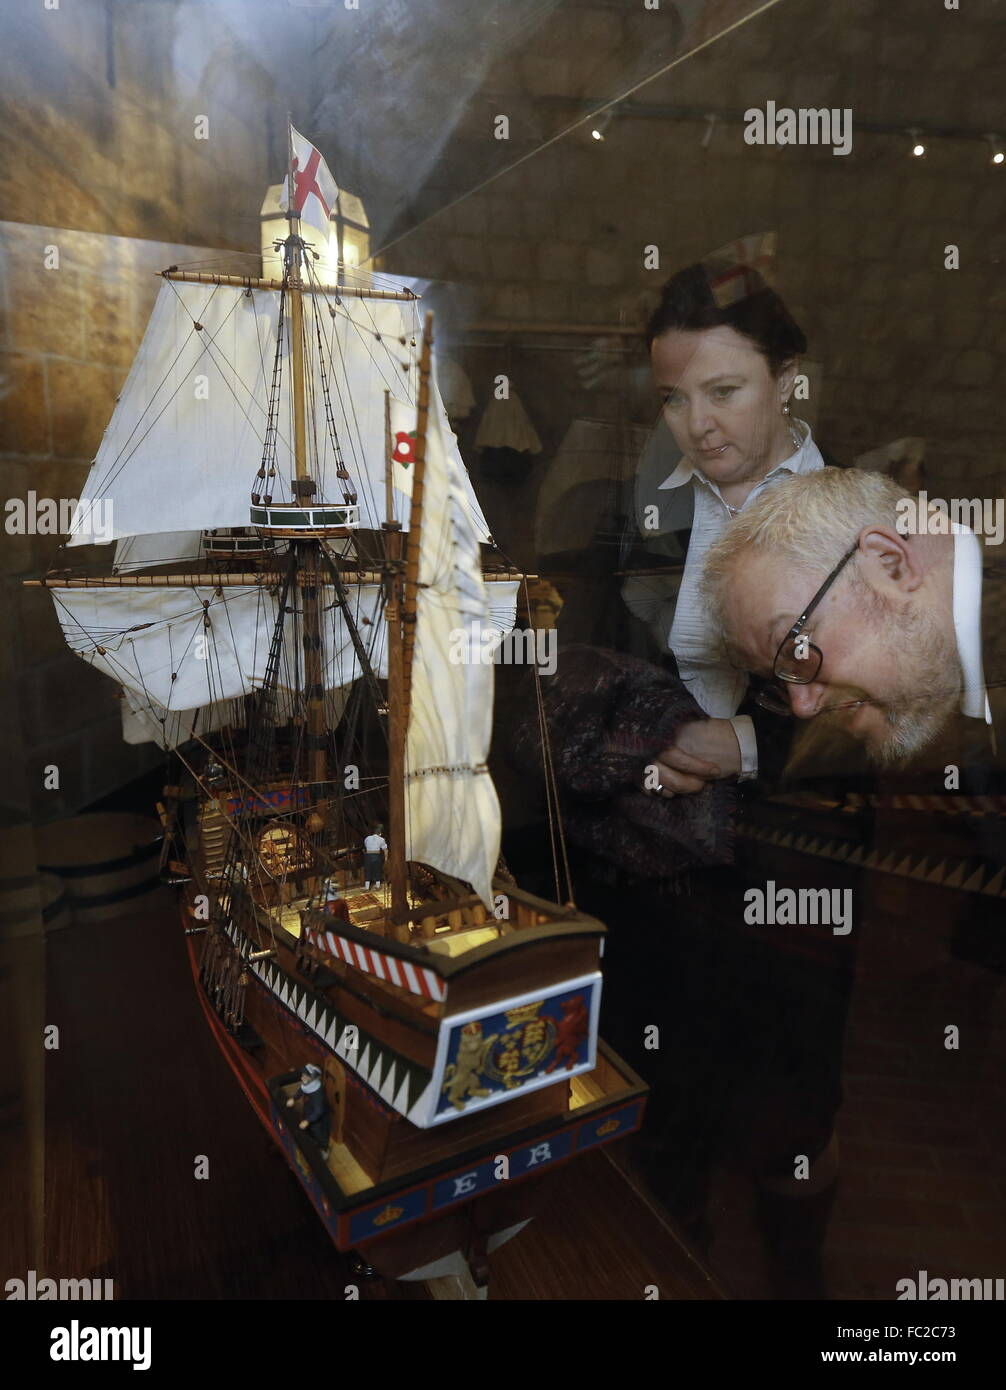 Moscow, Russia. 20th Jan, 2016. Visitors look at a model of an English ship in the Old English Court, a building - Stock Image